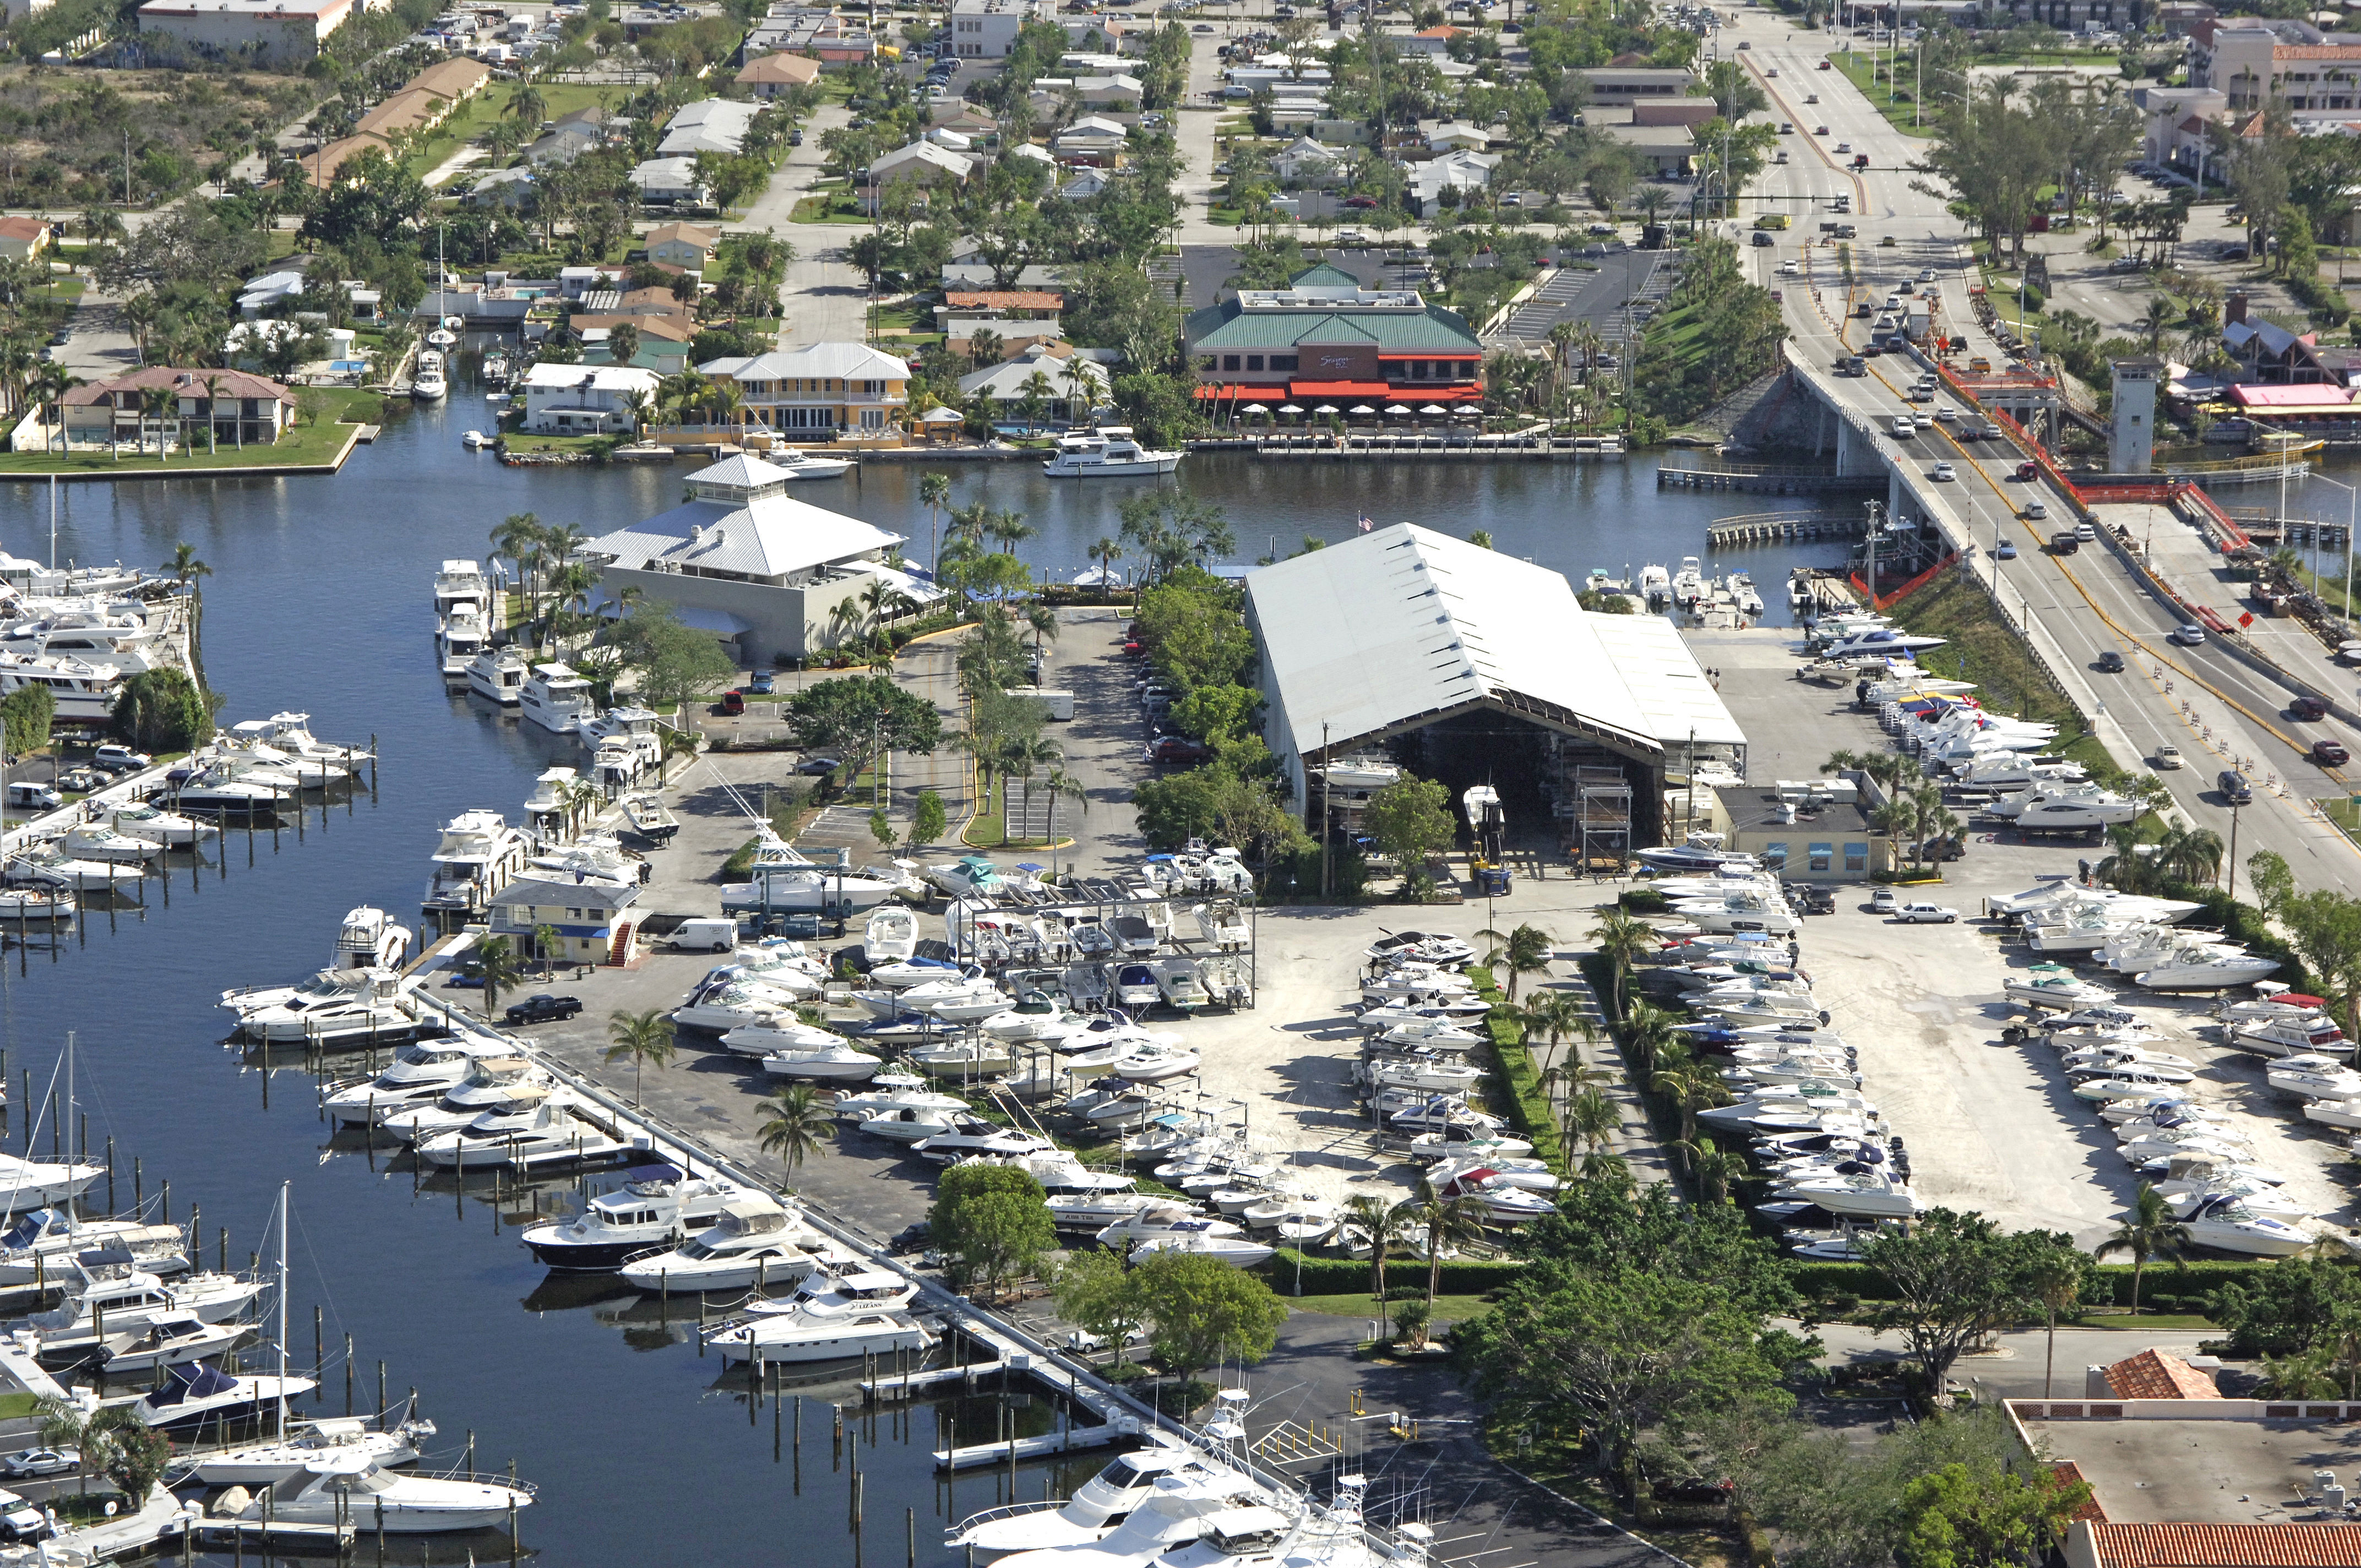 Pga Marina In Palm Beach Gardens Fl United States Marina Reviews Phone Number